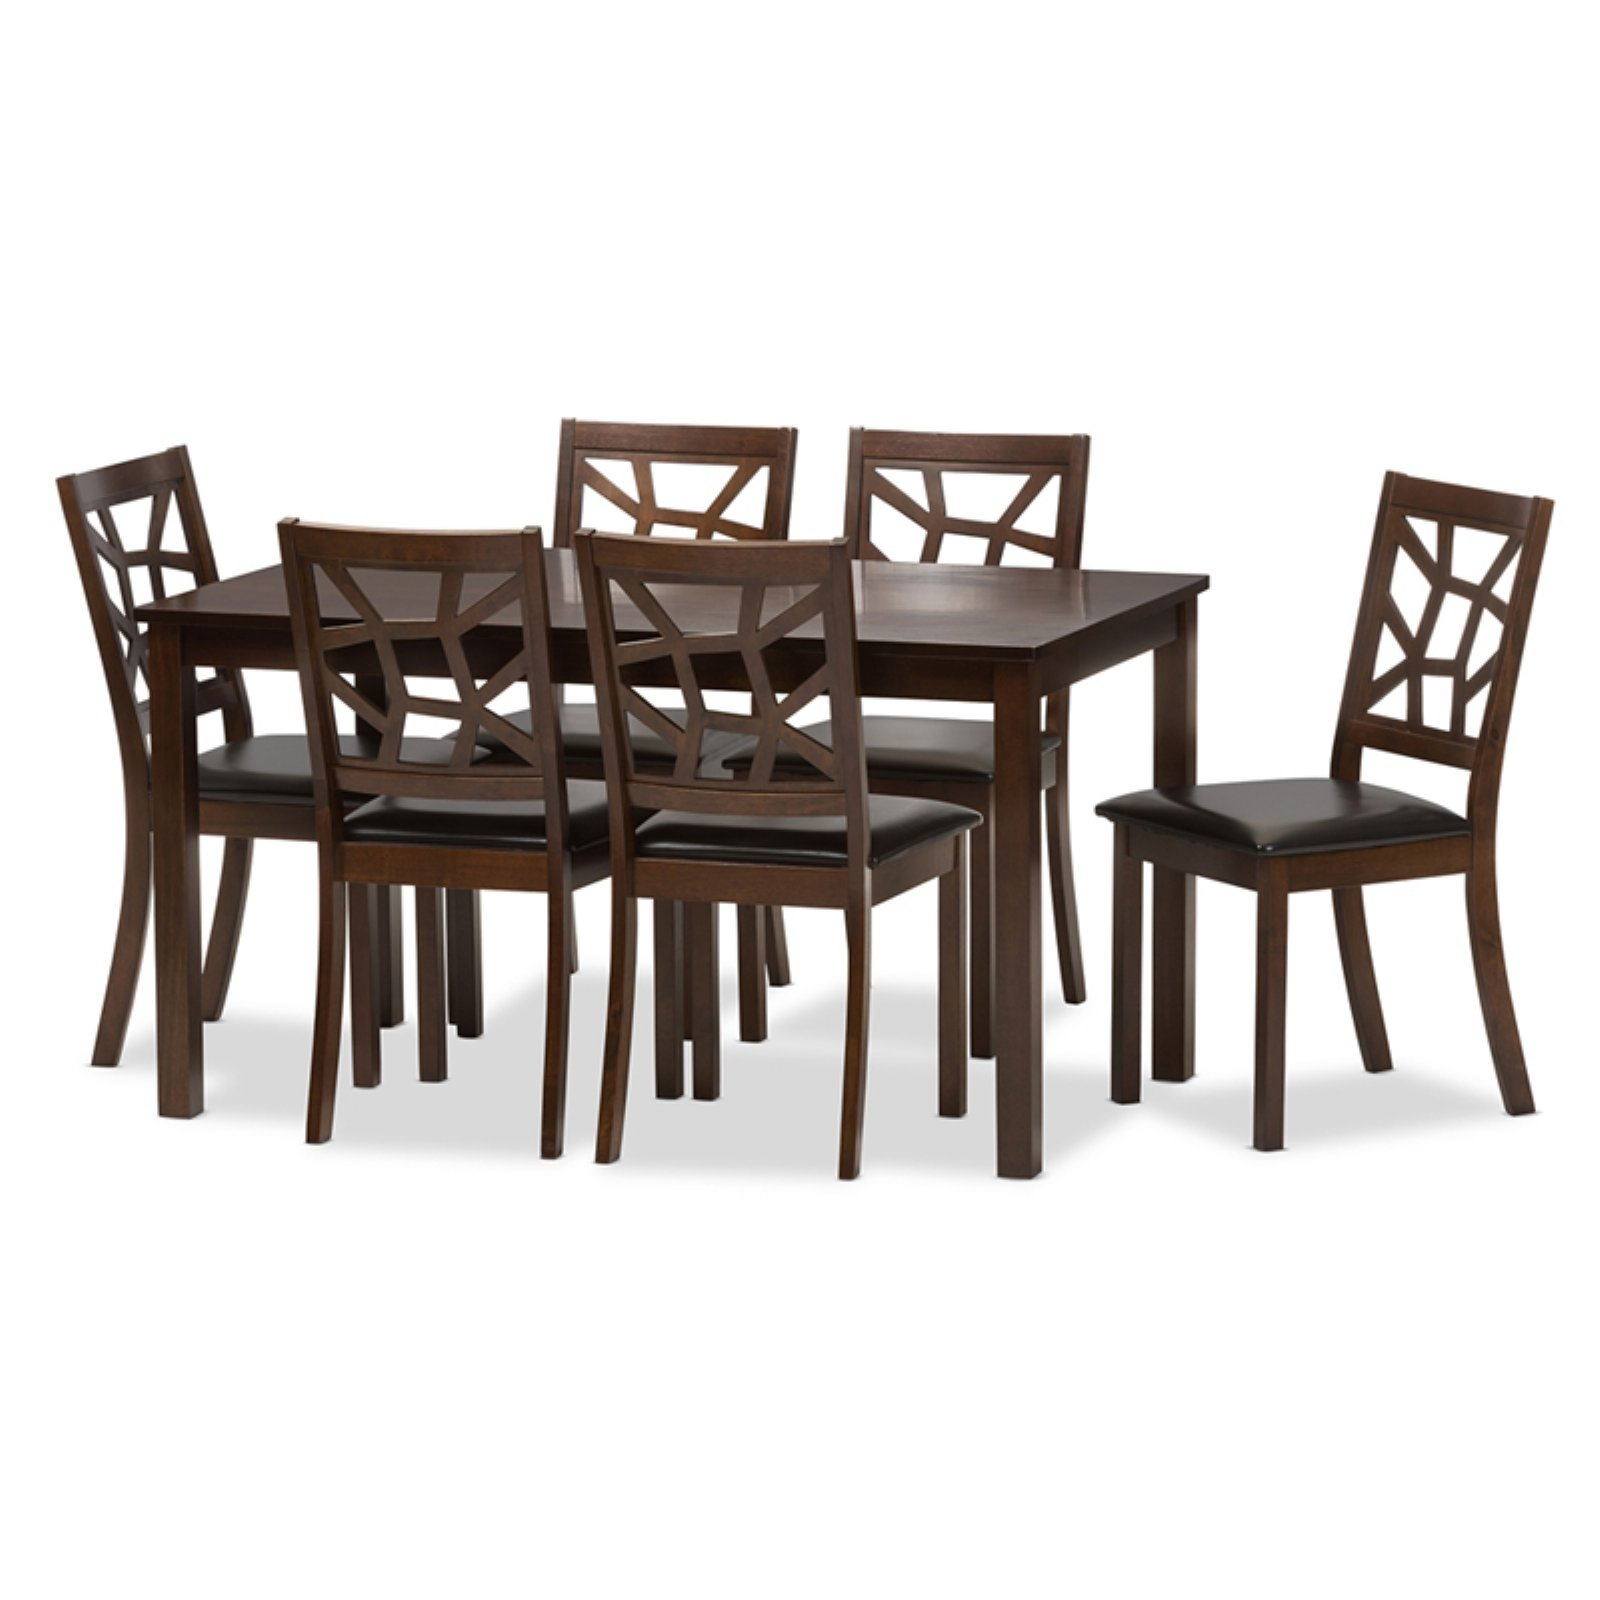 Baxton Studio Mozaika 7 Piece Dining Table Set